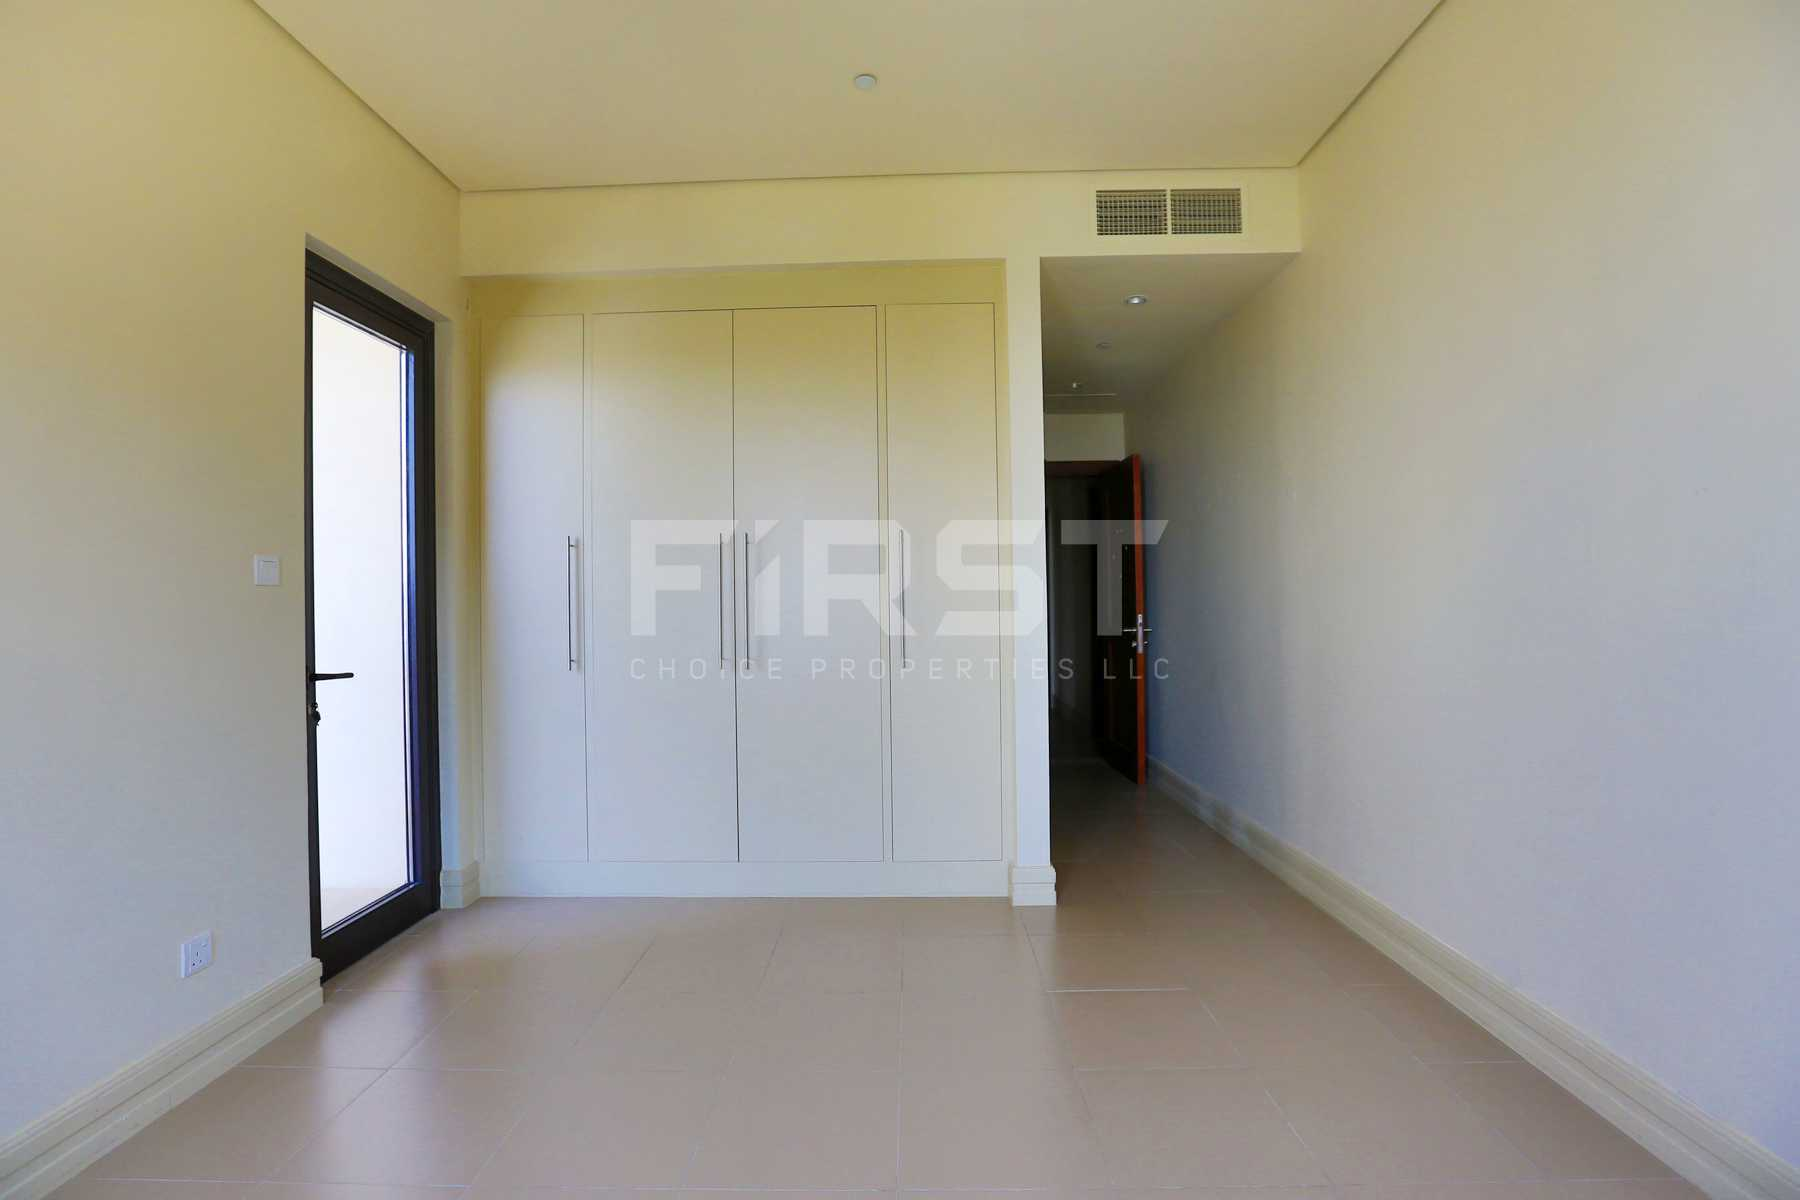 Internal Photo of 3 Bedroom Apartment on Saadiyat Beach Residences Saadiyat Island Abu Dhabi UAE (83).jpg